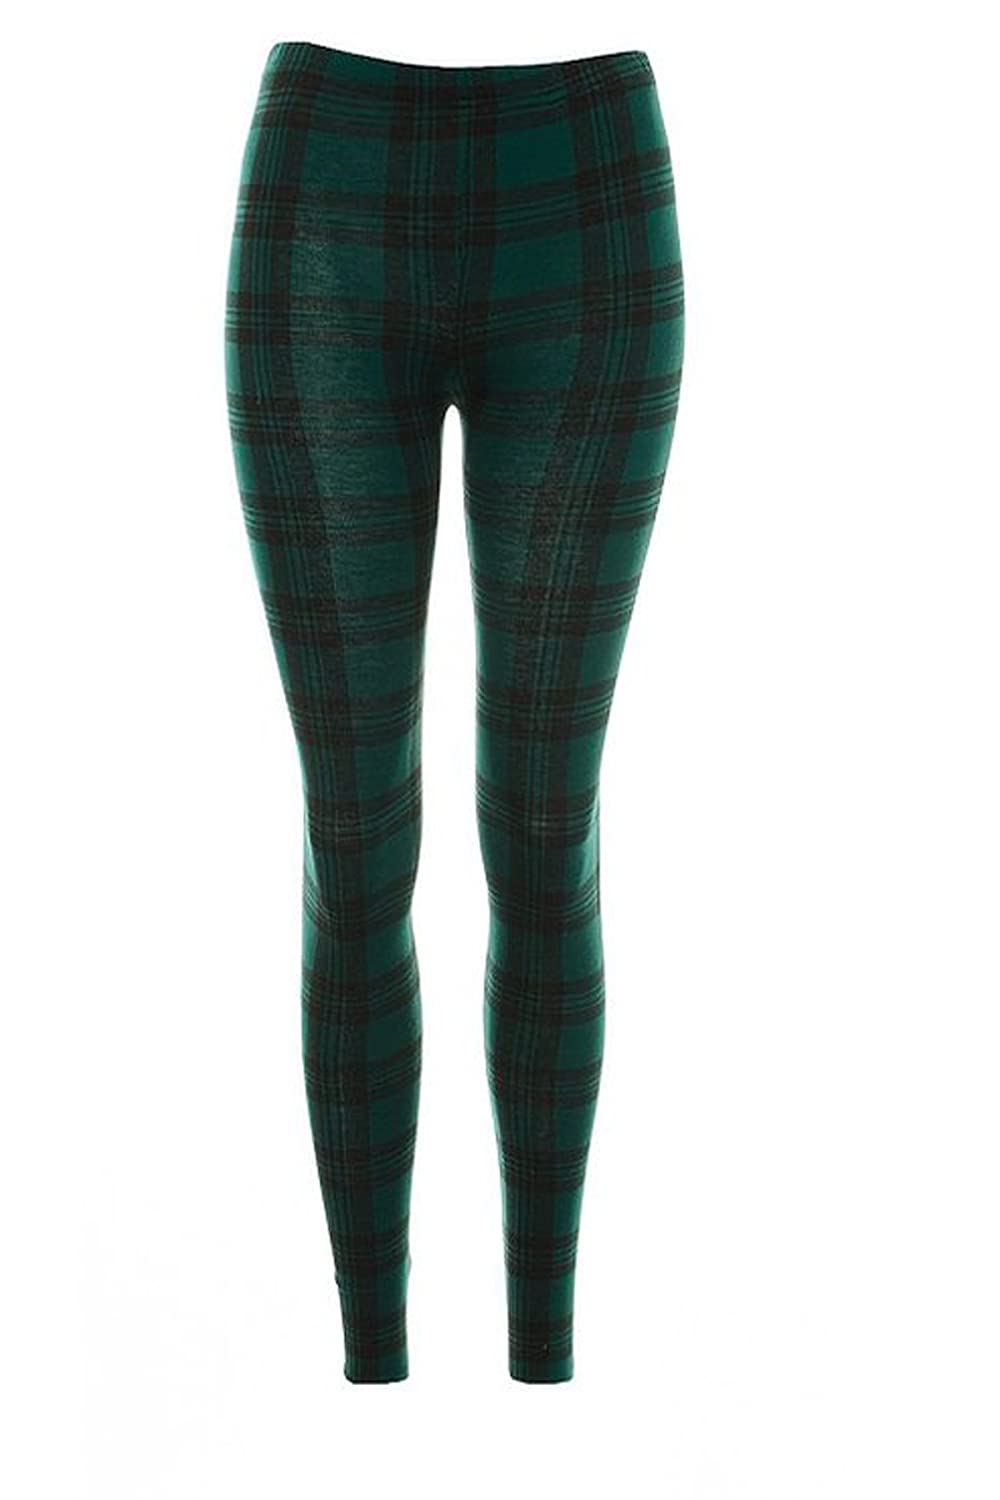 Girls Walk Girls Kids Full Length Check Tartan Print Stretchy Leggings Pant